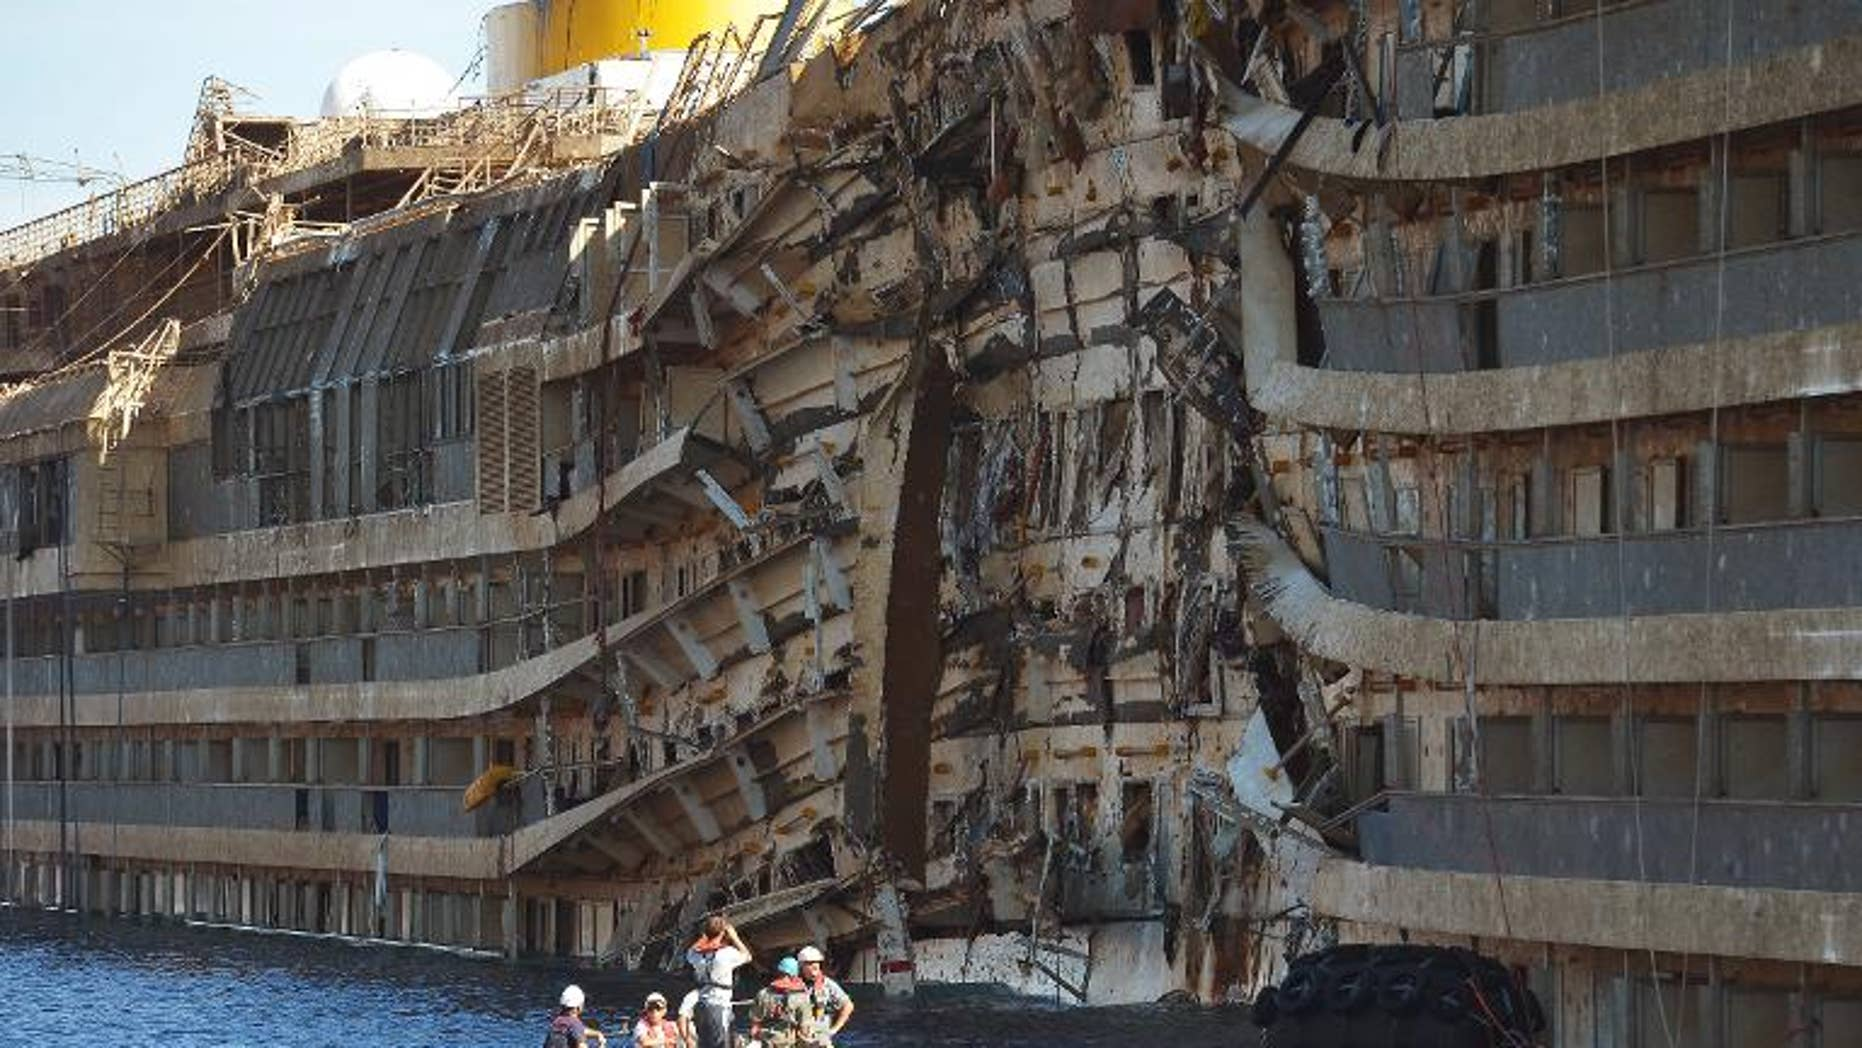 Workers from US salvage company Titan and Italian firm Micoperi inspect the wreck of the Costa Concordia cruise ship after it was hauled out of the water, in Giglio harbour on September 18, 2013